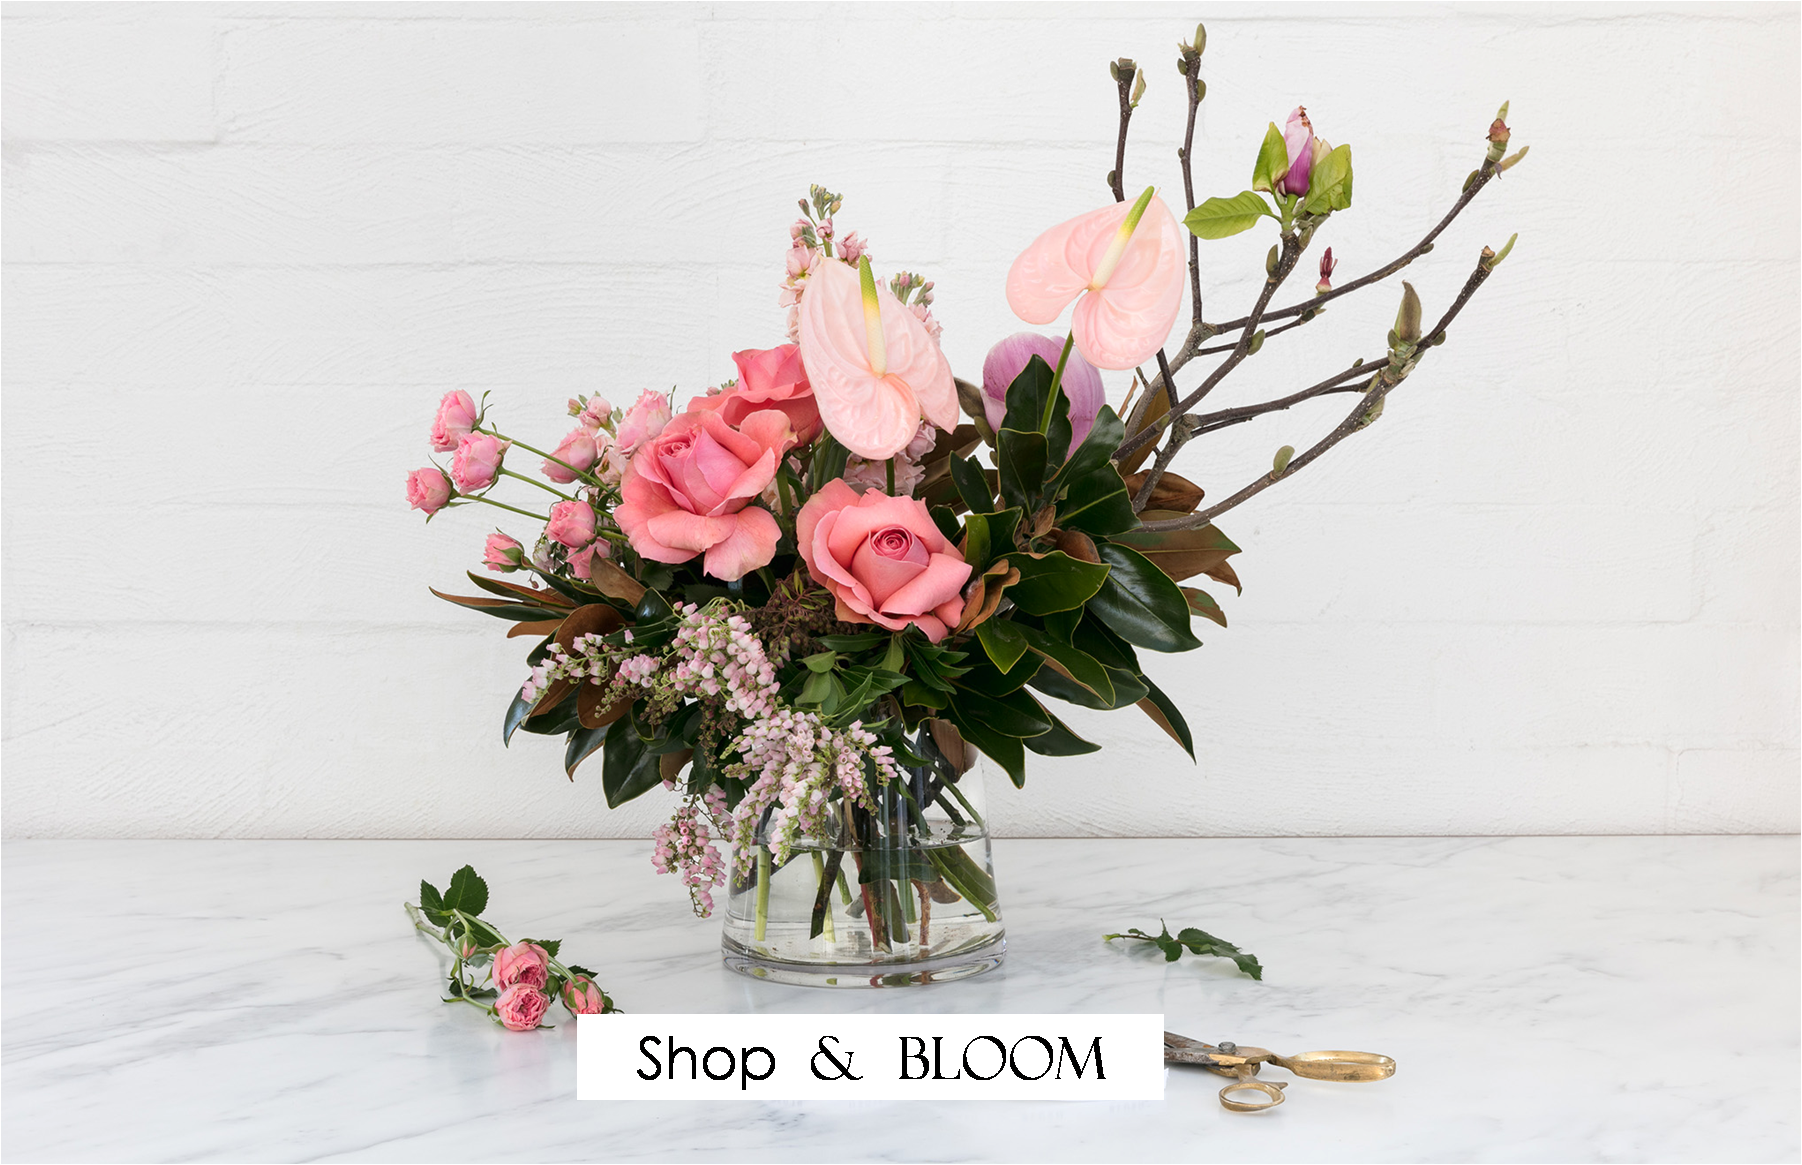 1-we-make-el-paso-bloom-with-luxury-gifts-rose-boxes-angies-floral-designs-angies-we-make-el-paso-el-paso-florist-bloom-floral-instagram-designs-rose-ladders-texas-el-paso-florist-79912-west-angies-flower.png